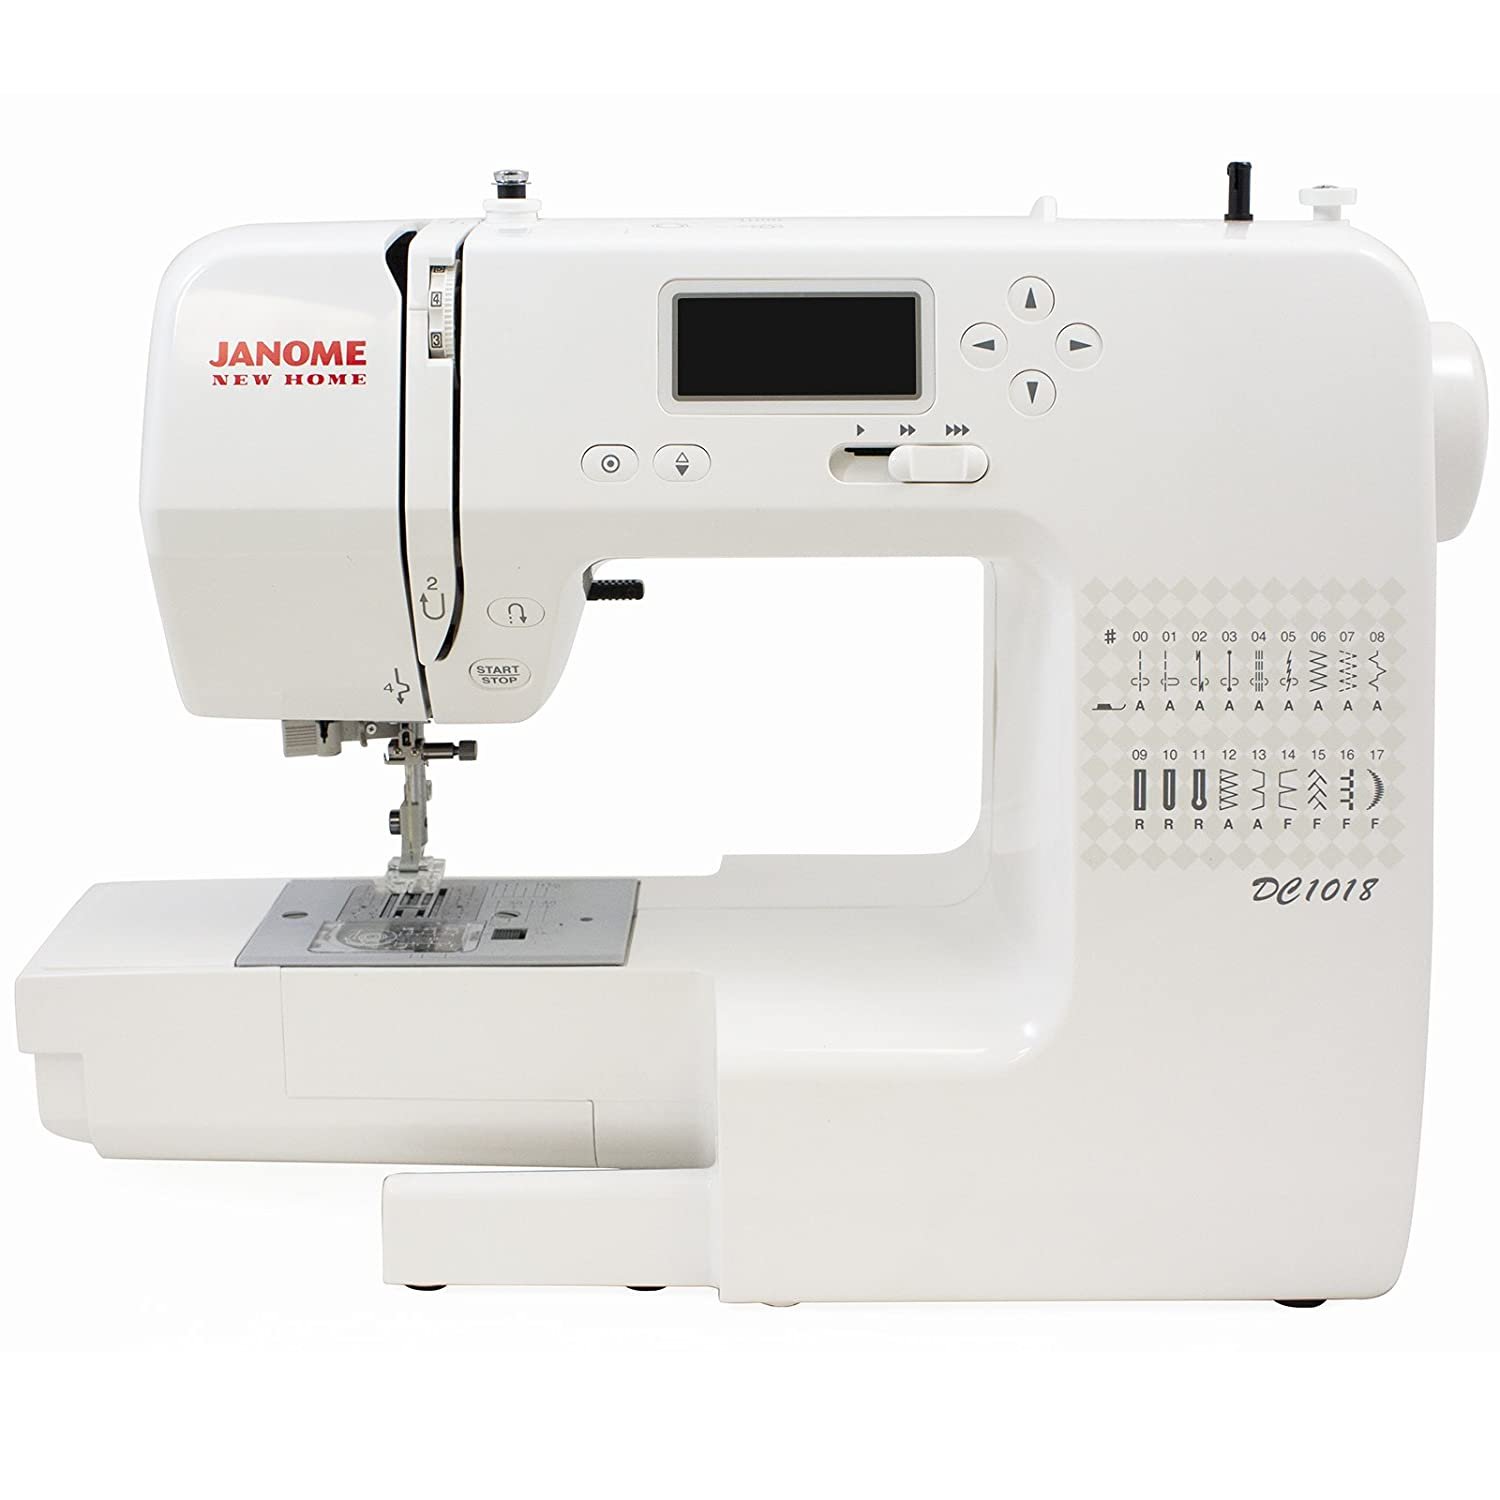 machines skyline specialty machine the quilting shop sewing janome quilt cmyk